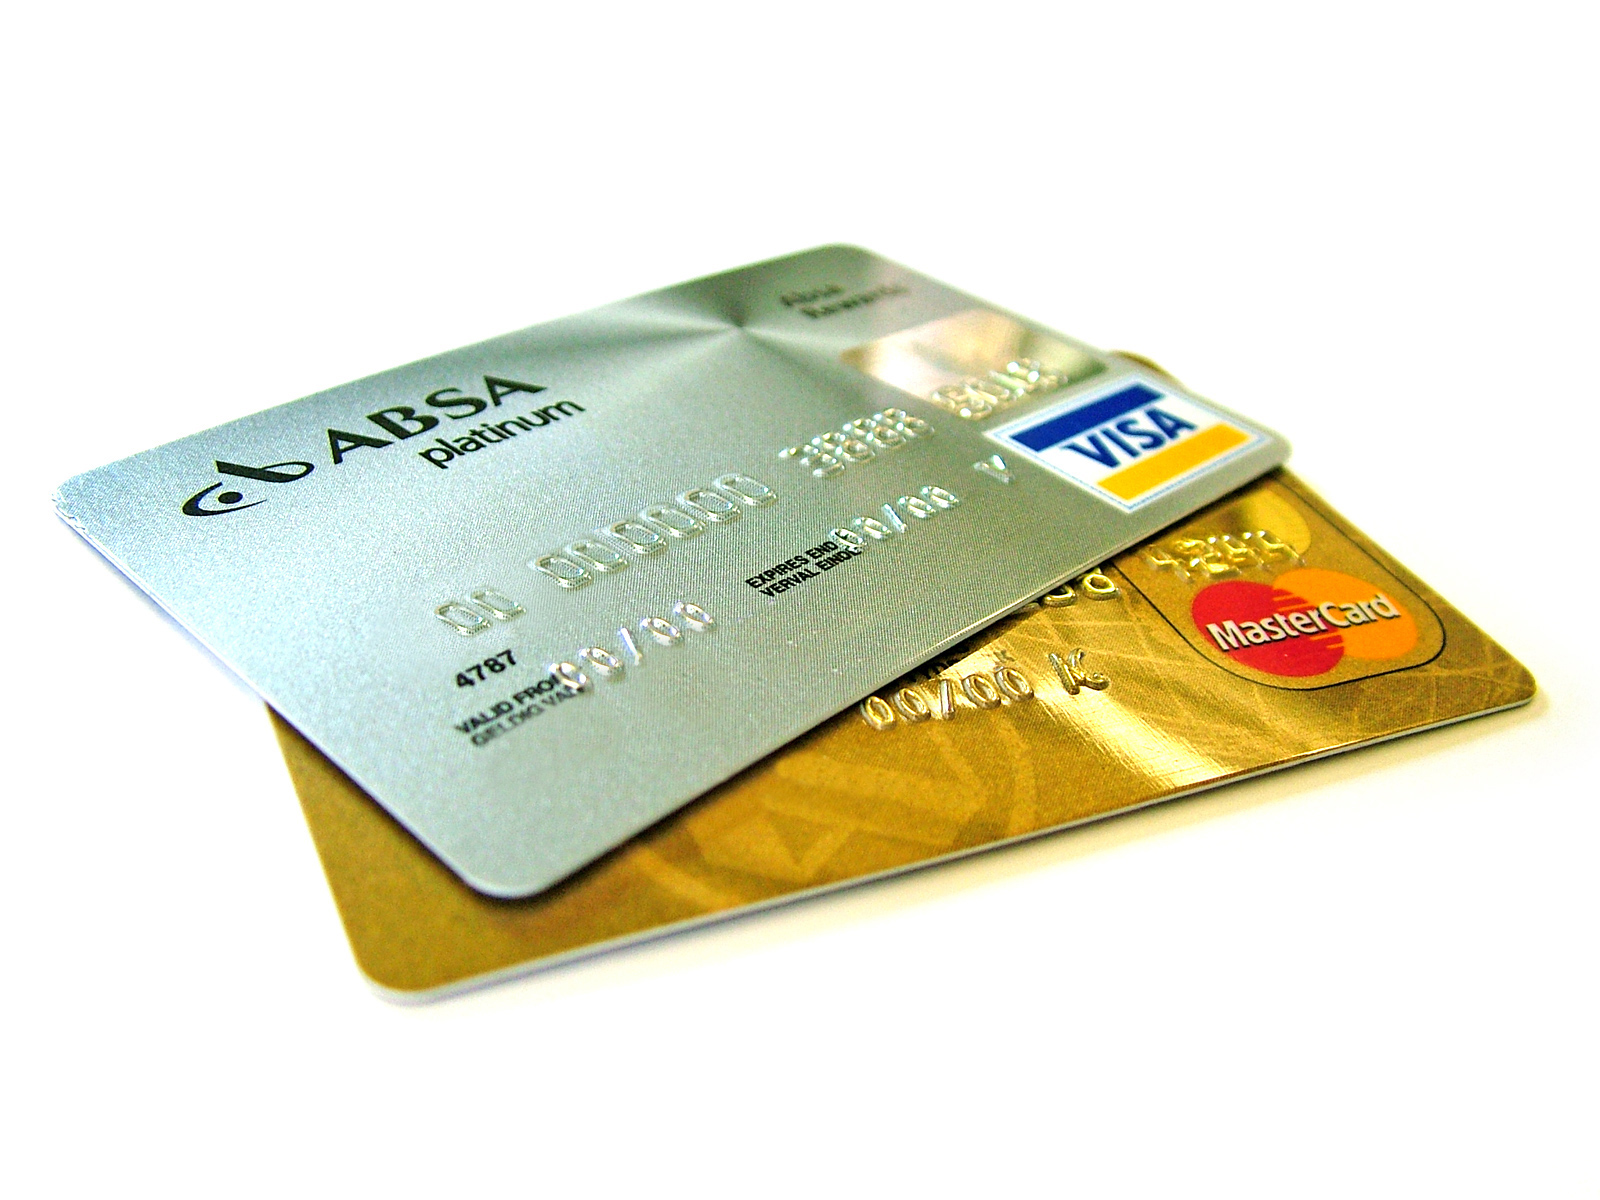 Stores Credit Card 5 Security Tips To Protect Your Credit Card When Shopping